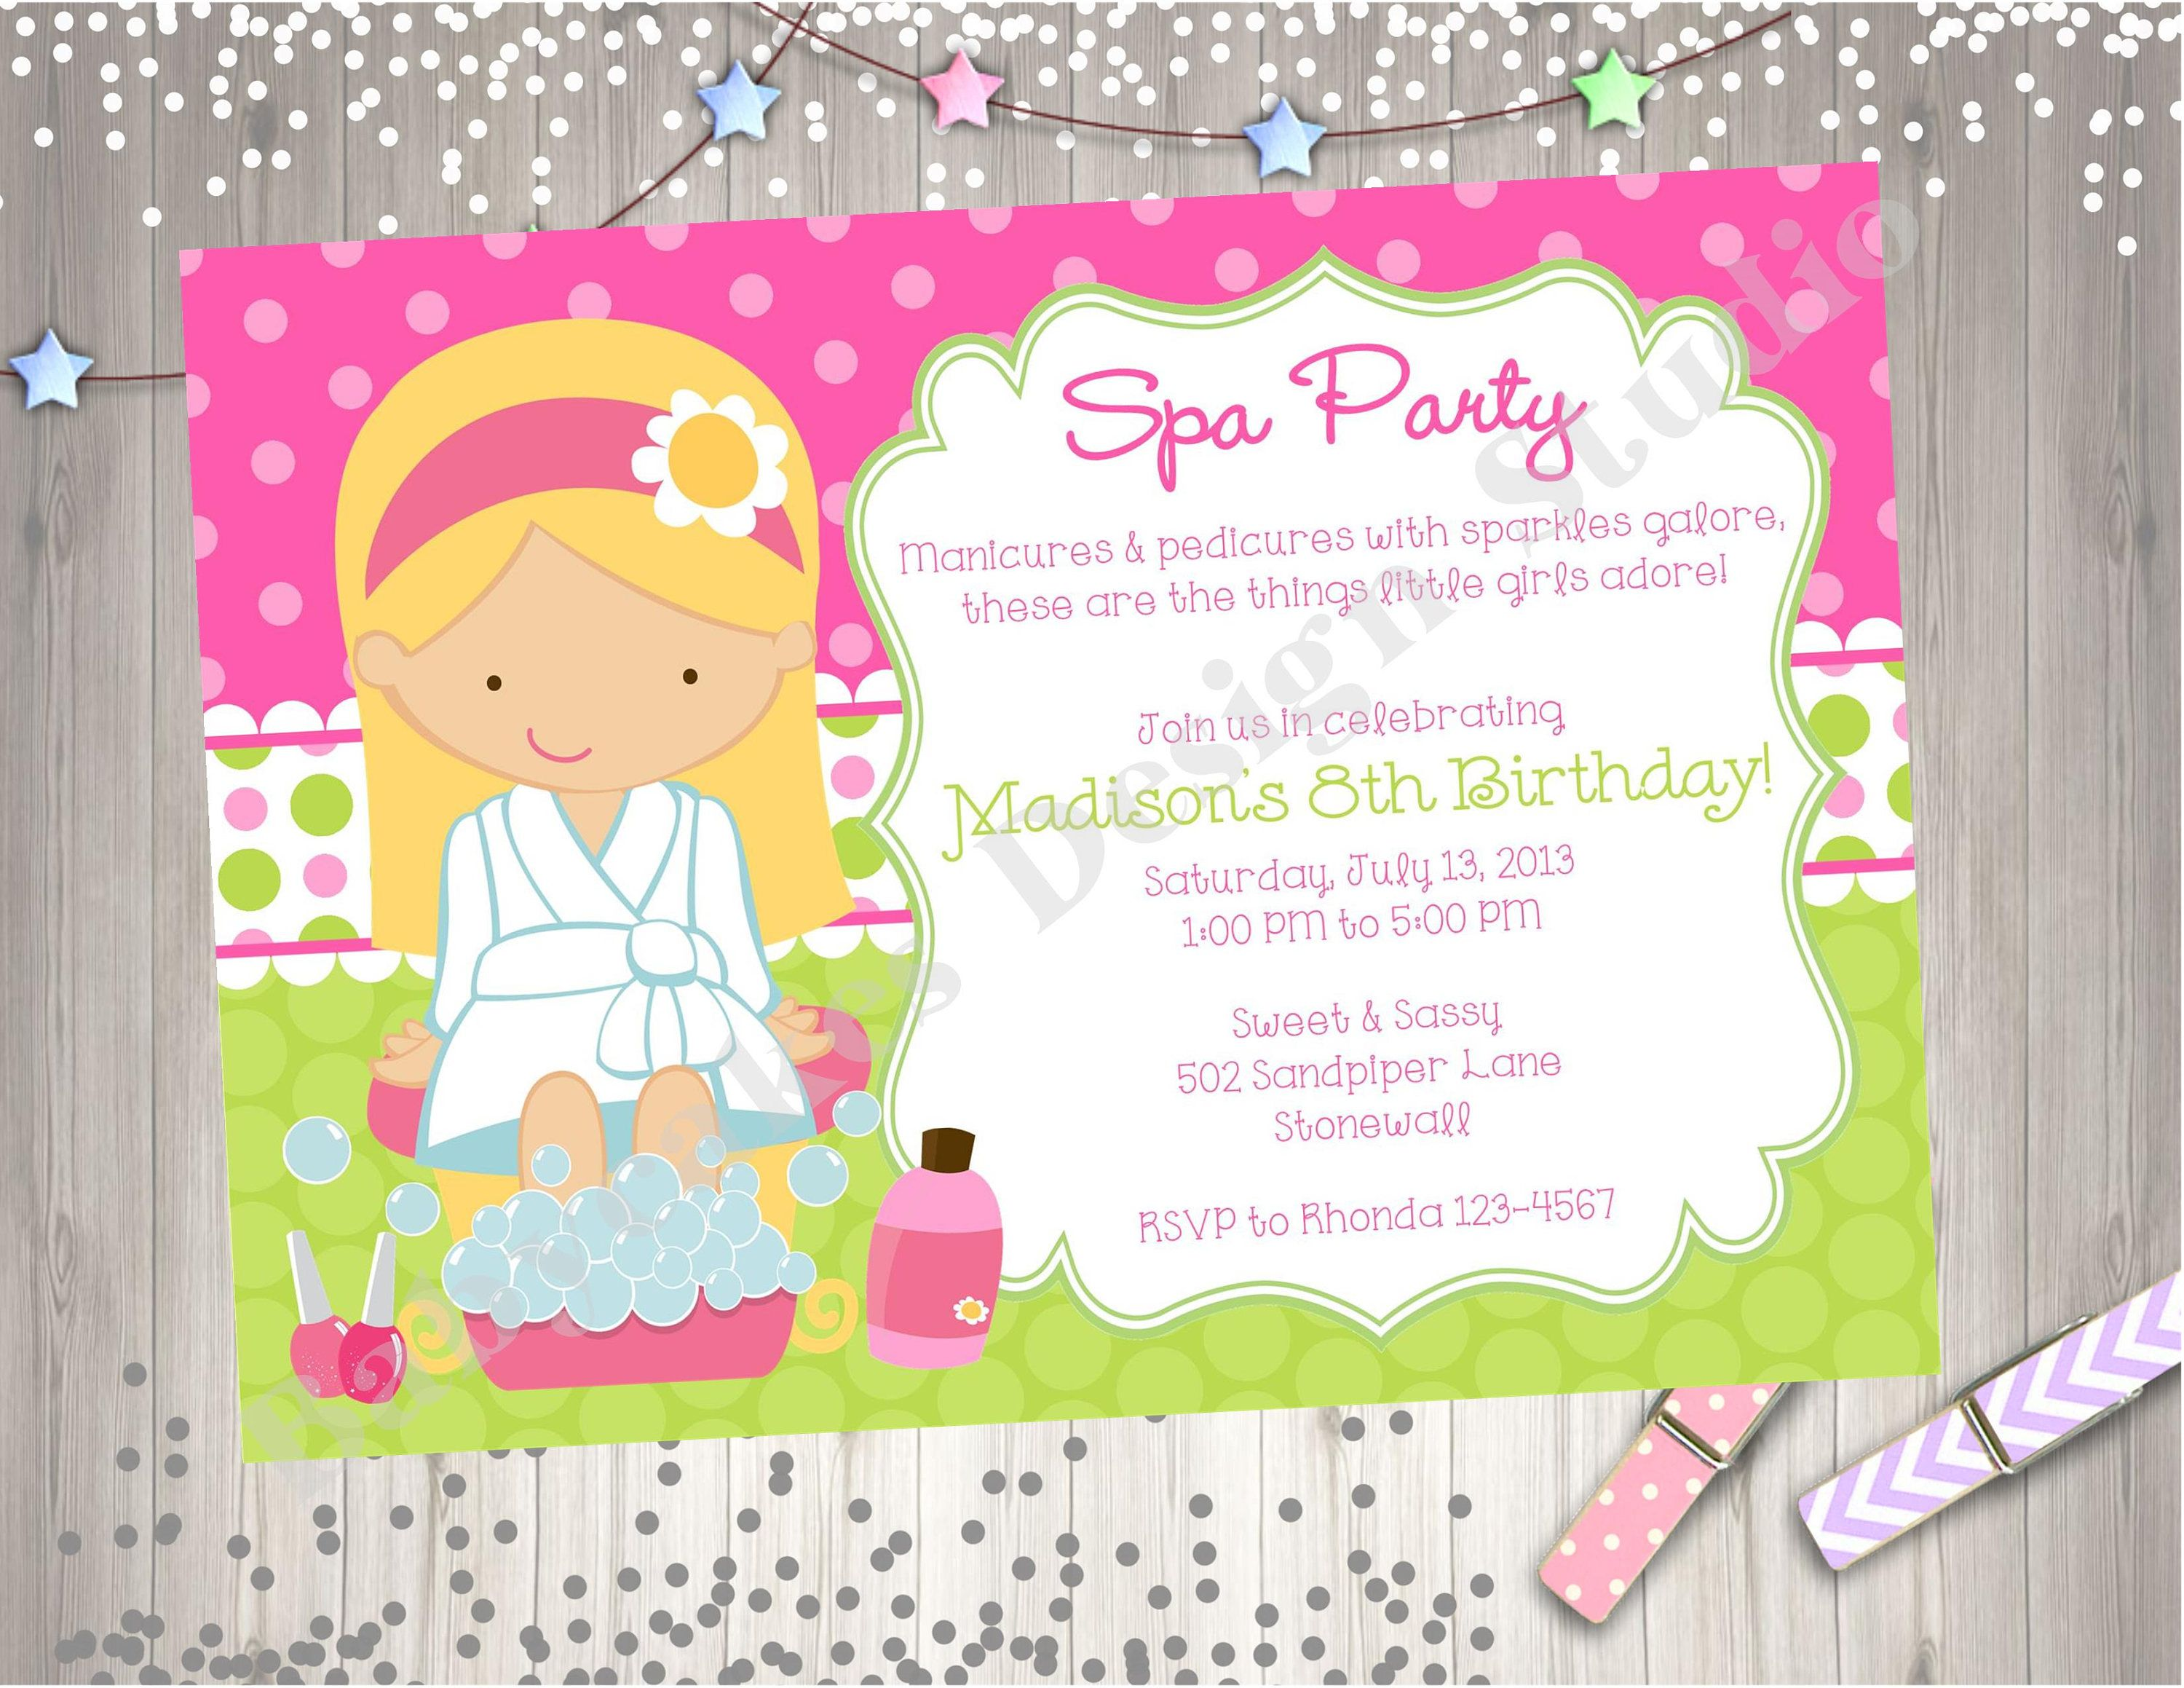 Spa Party Birthday Invitation Invite Spa Birthday Party Printable ...